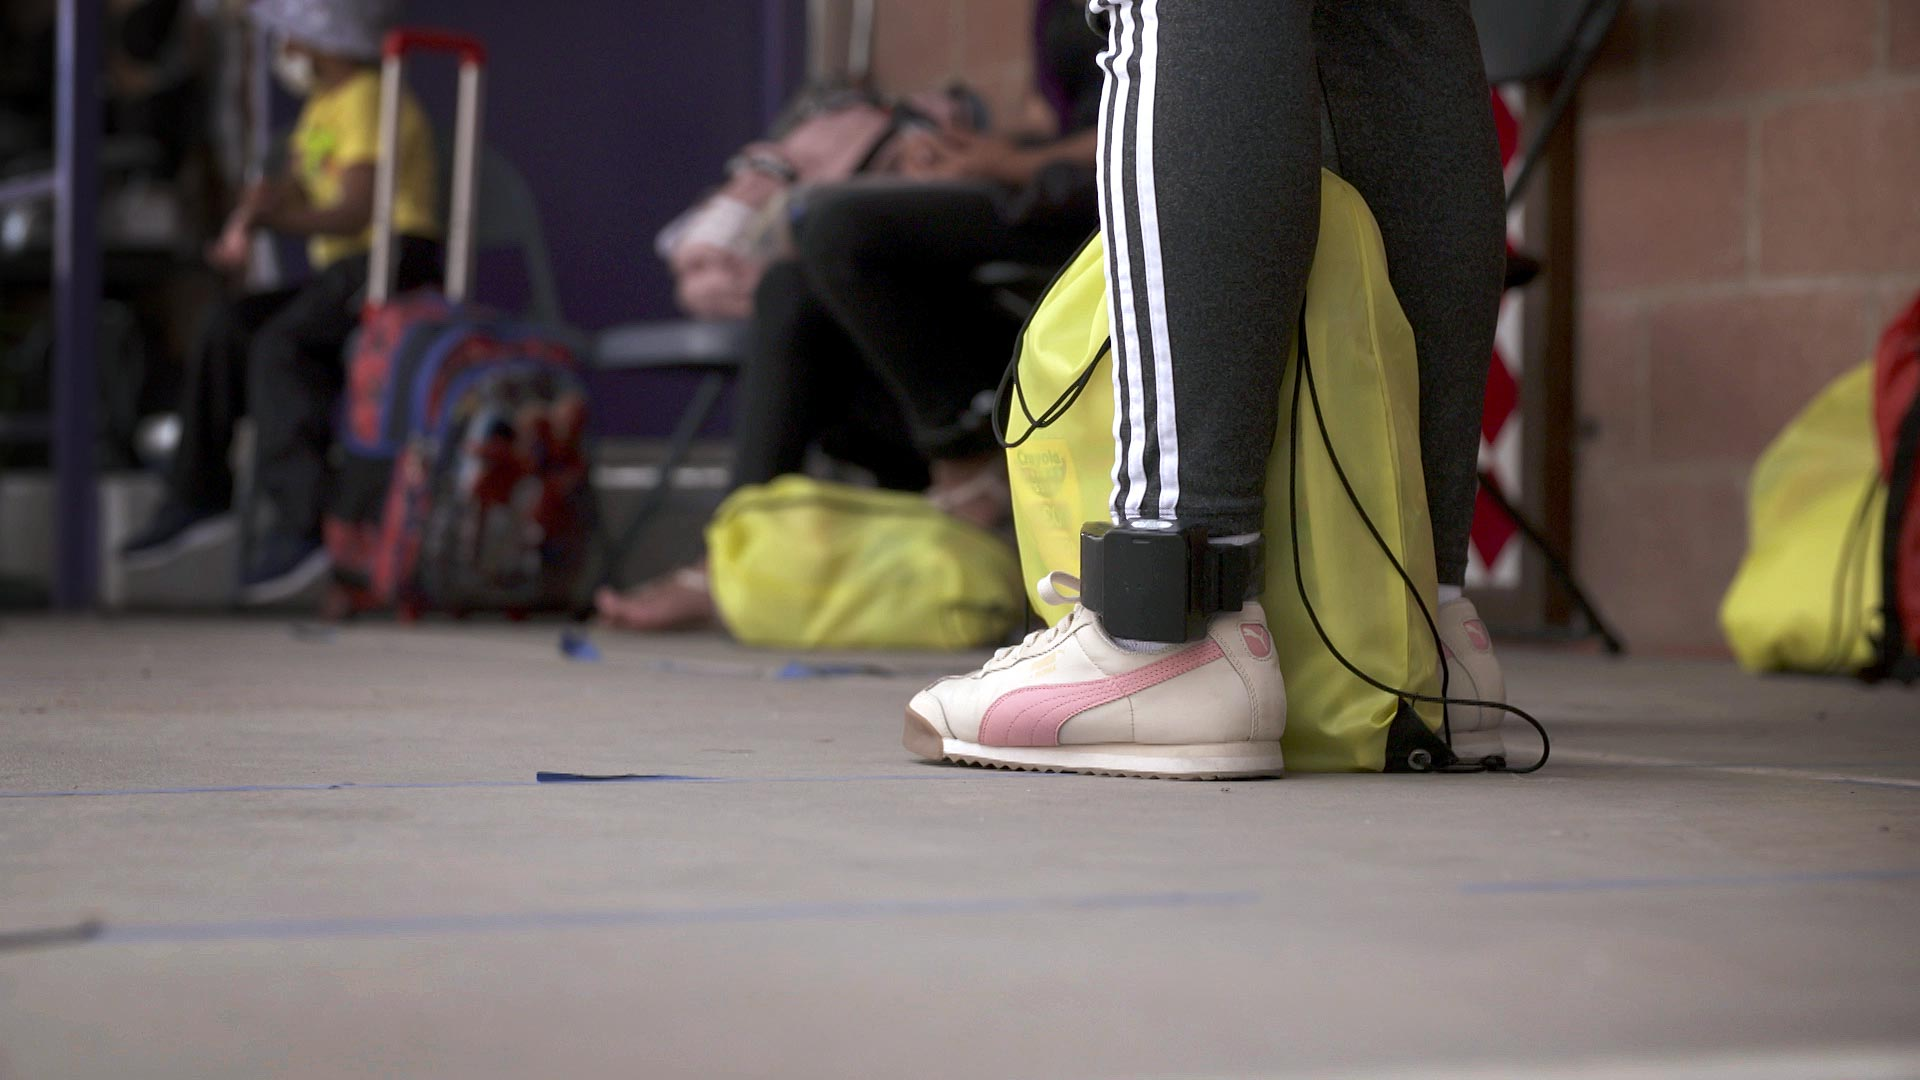 A GPS ankle bracelet is visible on the ankle of a migrant at Casa Alitas in Tucson. June 2021.